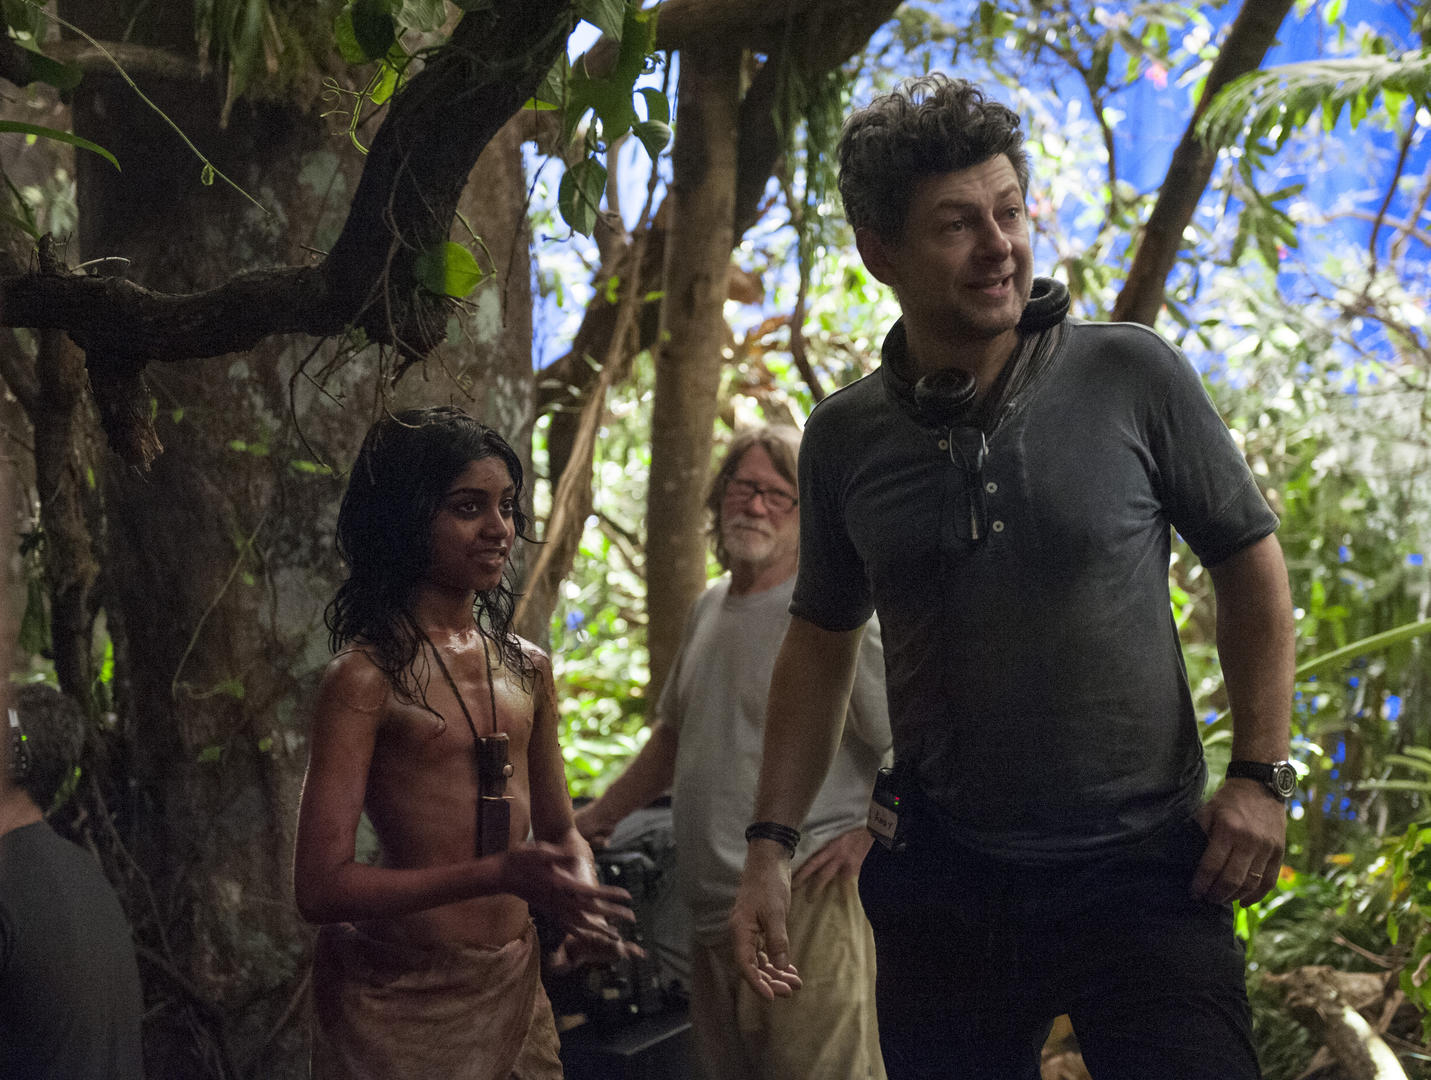 (L-R) Actor Rohan Chand and director Andy Serkis. Photo courtesy: Network.